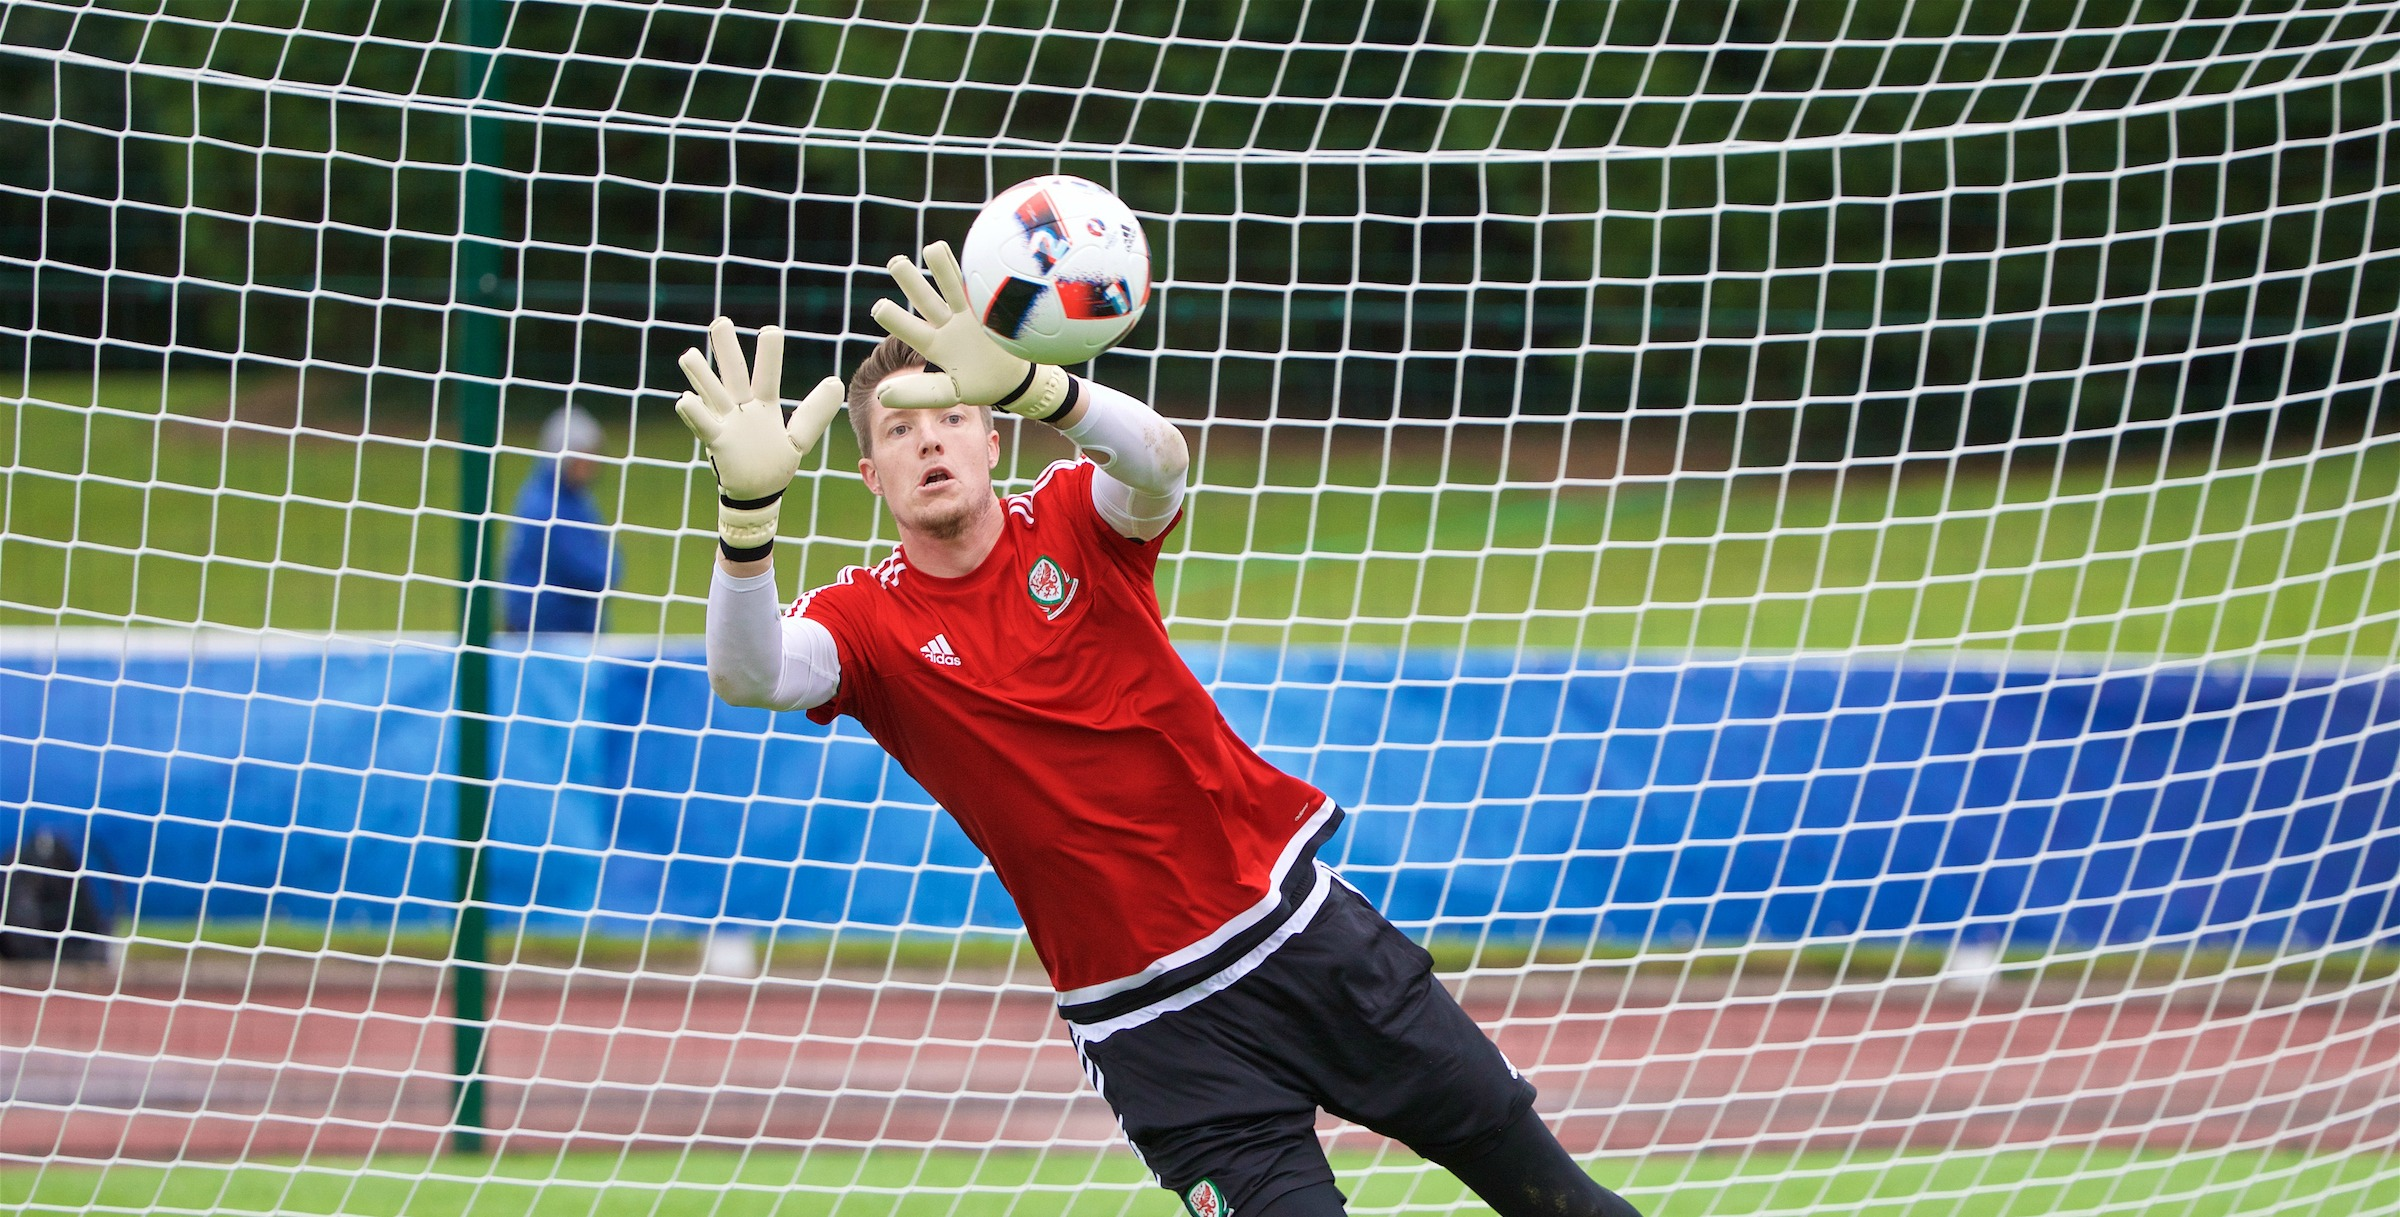 If you want to coach goalkeepers, here's a great course for you